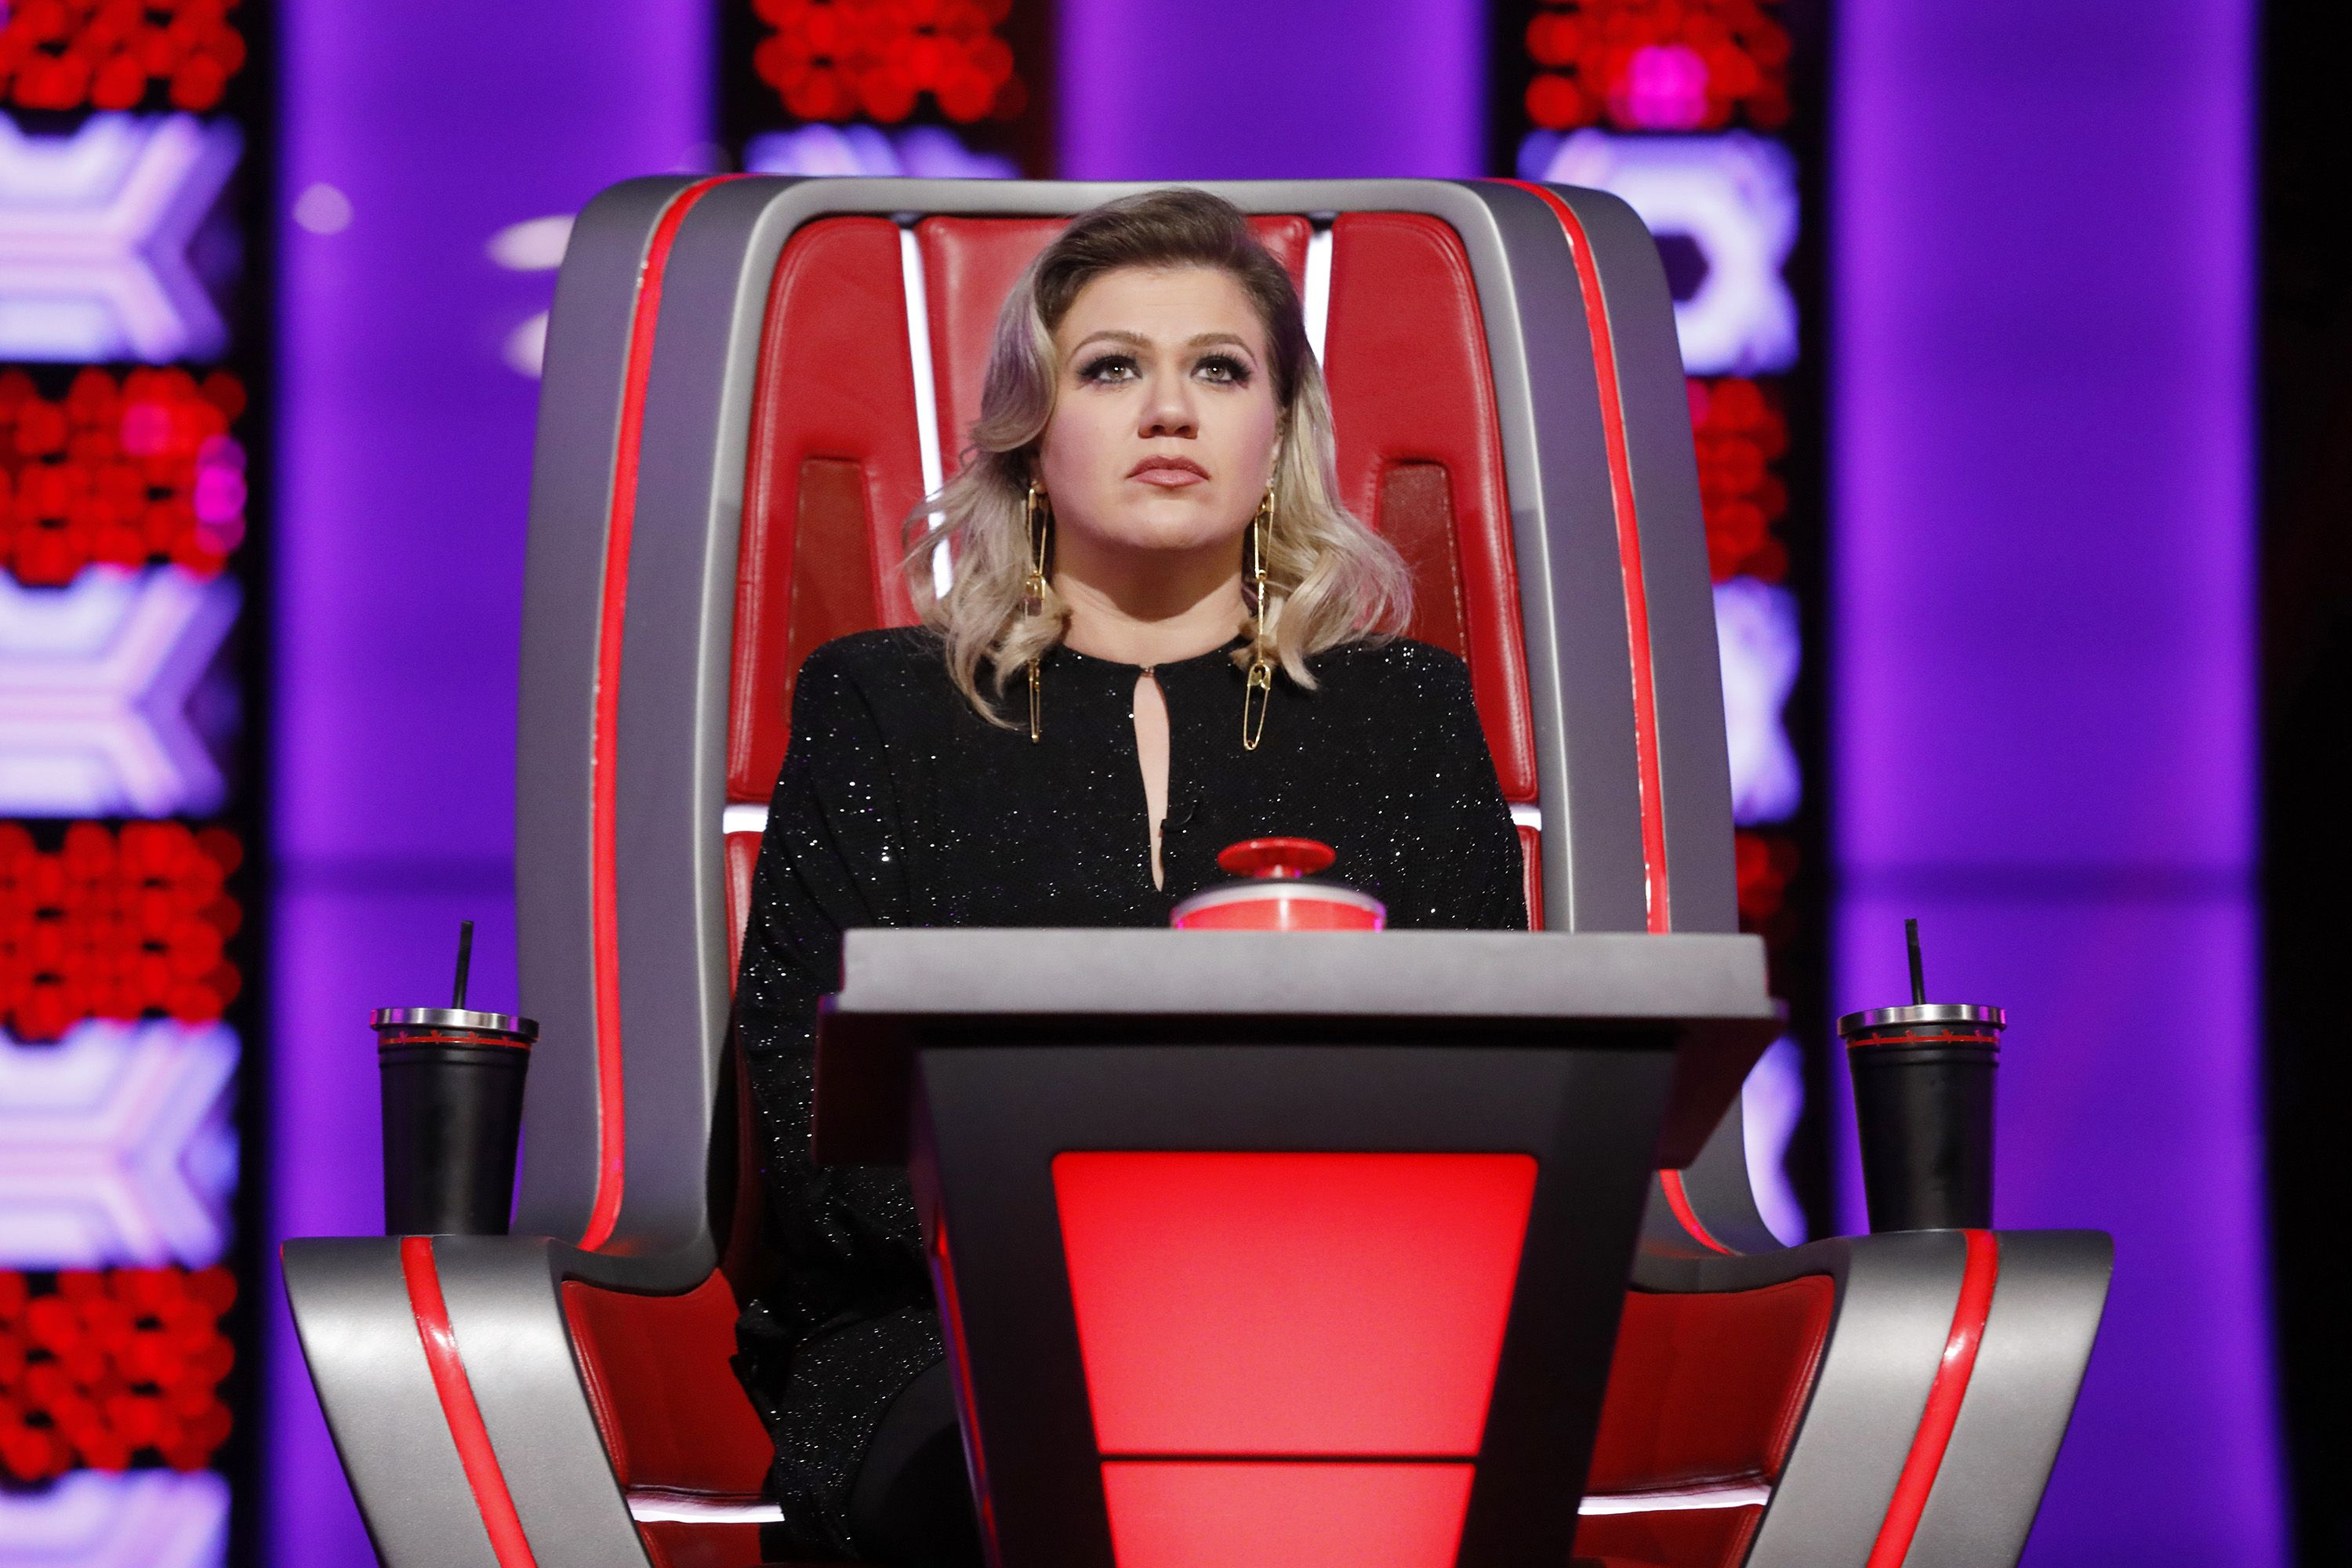 'The Voice' Is Getting Pushed Out of Its Tuesday Time Slot by Another Show